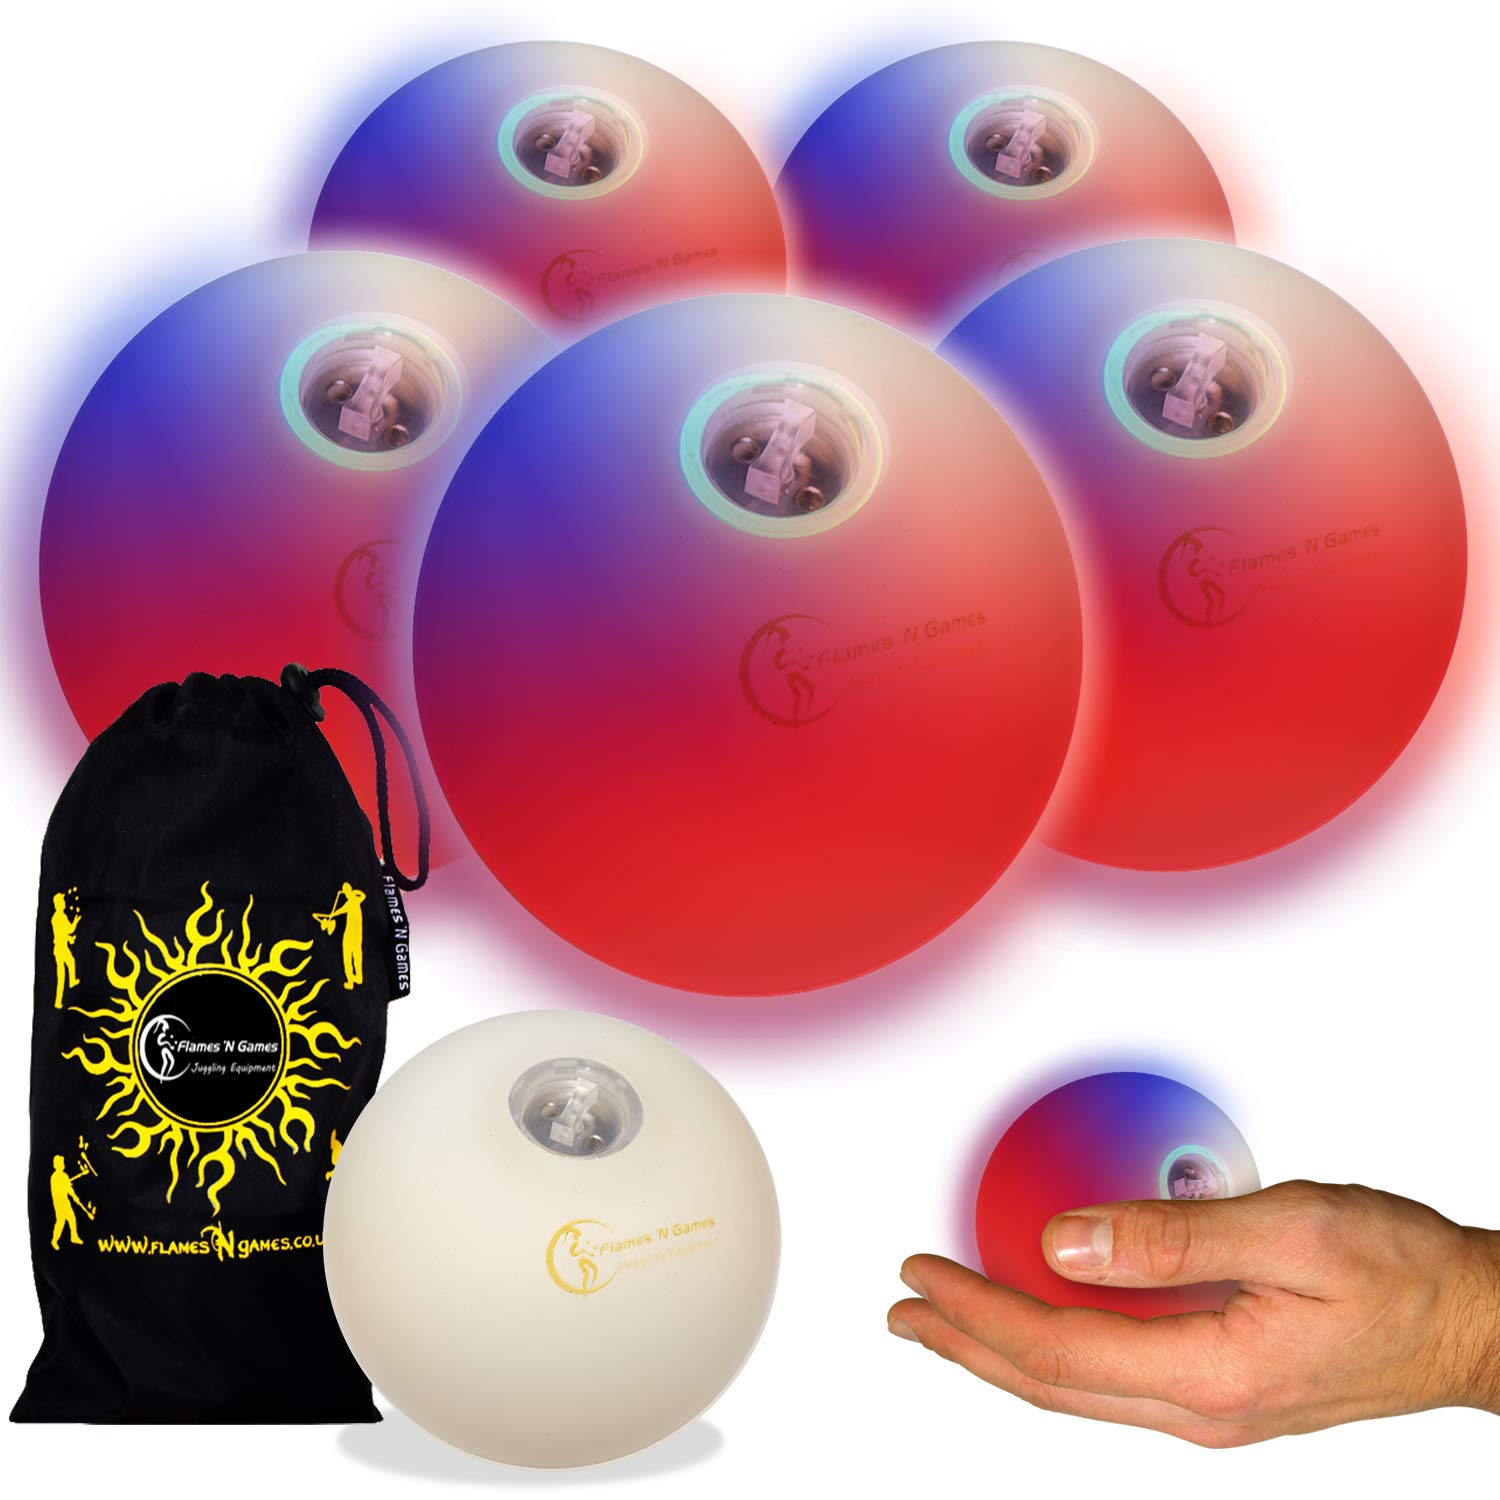 Flames N Games Pro LED Glow Juggling Balls 5X (Fast Strobe RGB Effect) Ultra Bright Battery Powered Glow LED Juggling Ball Set with Travel Bag. (Set of 5)